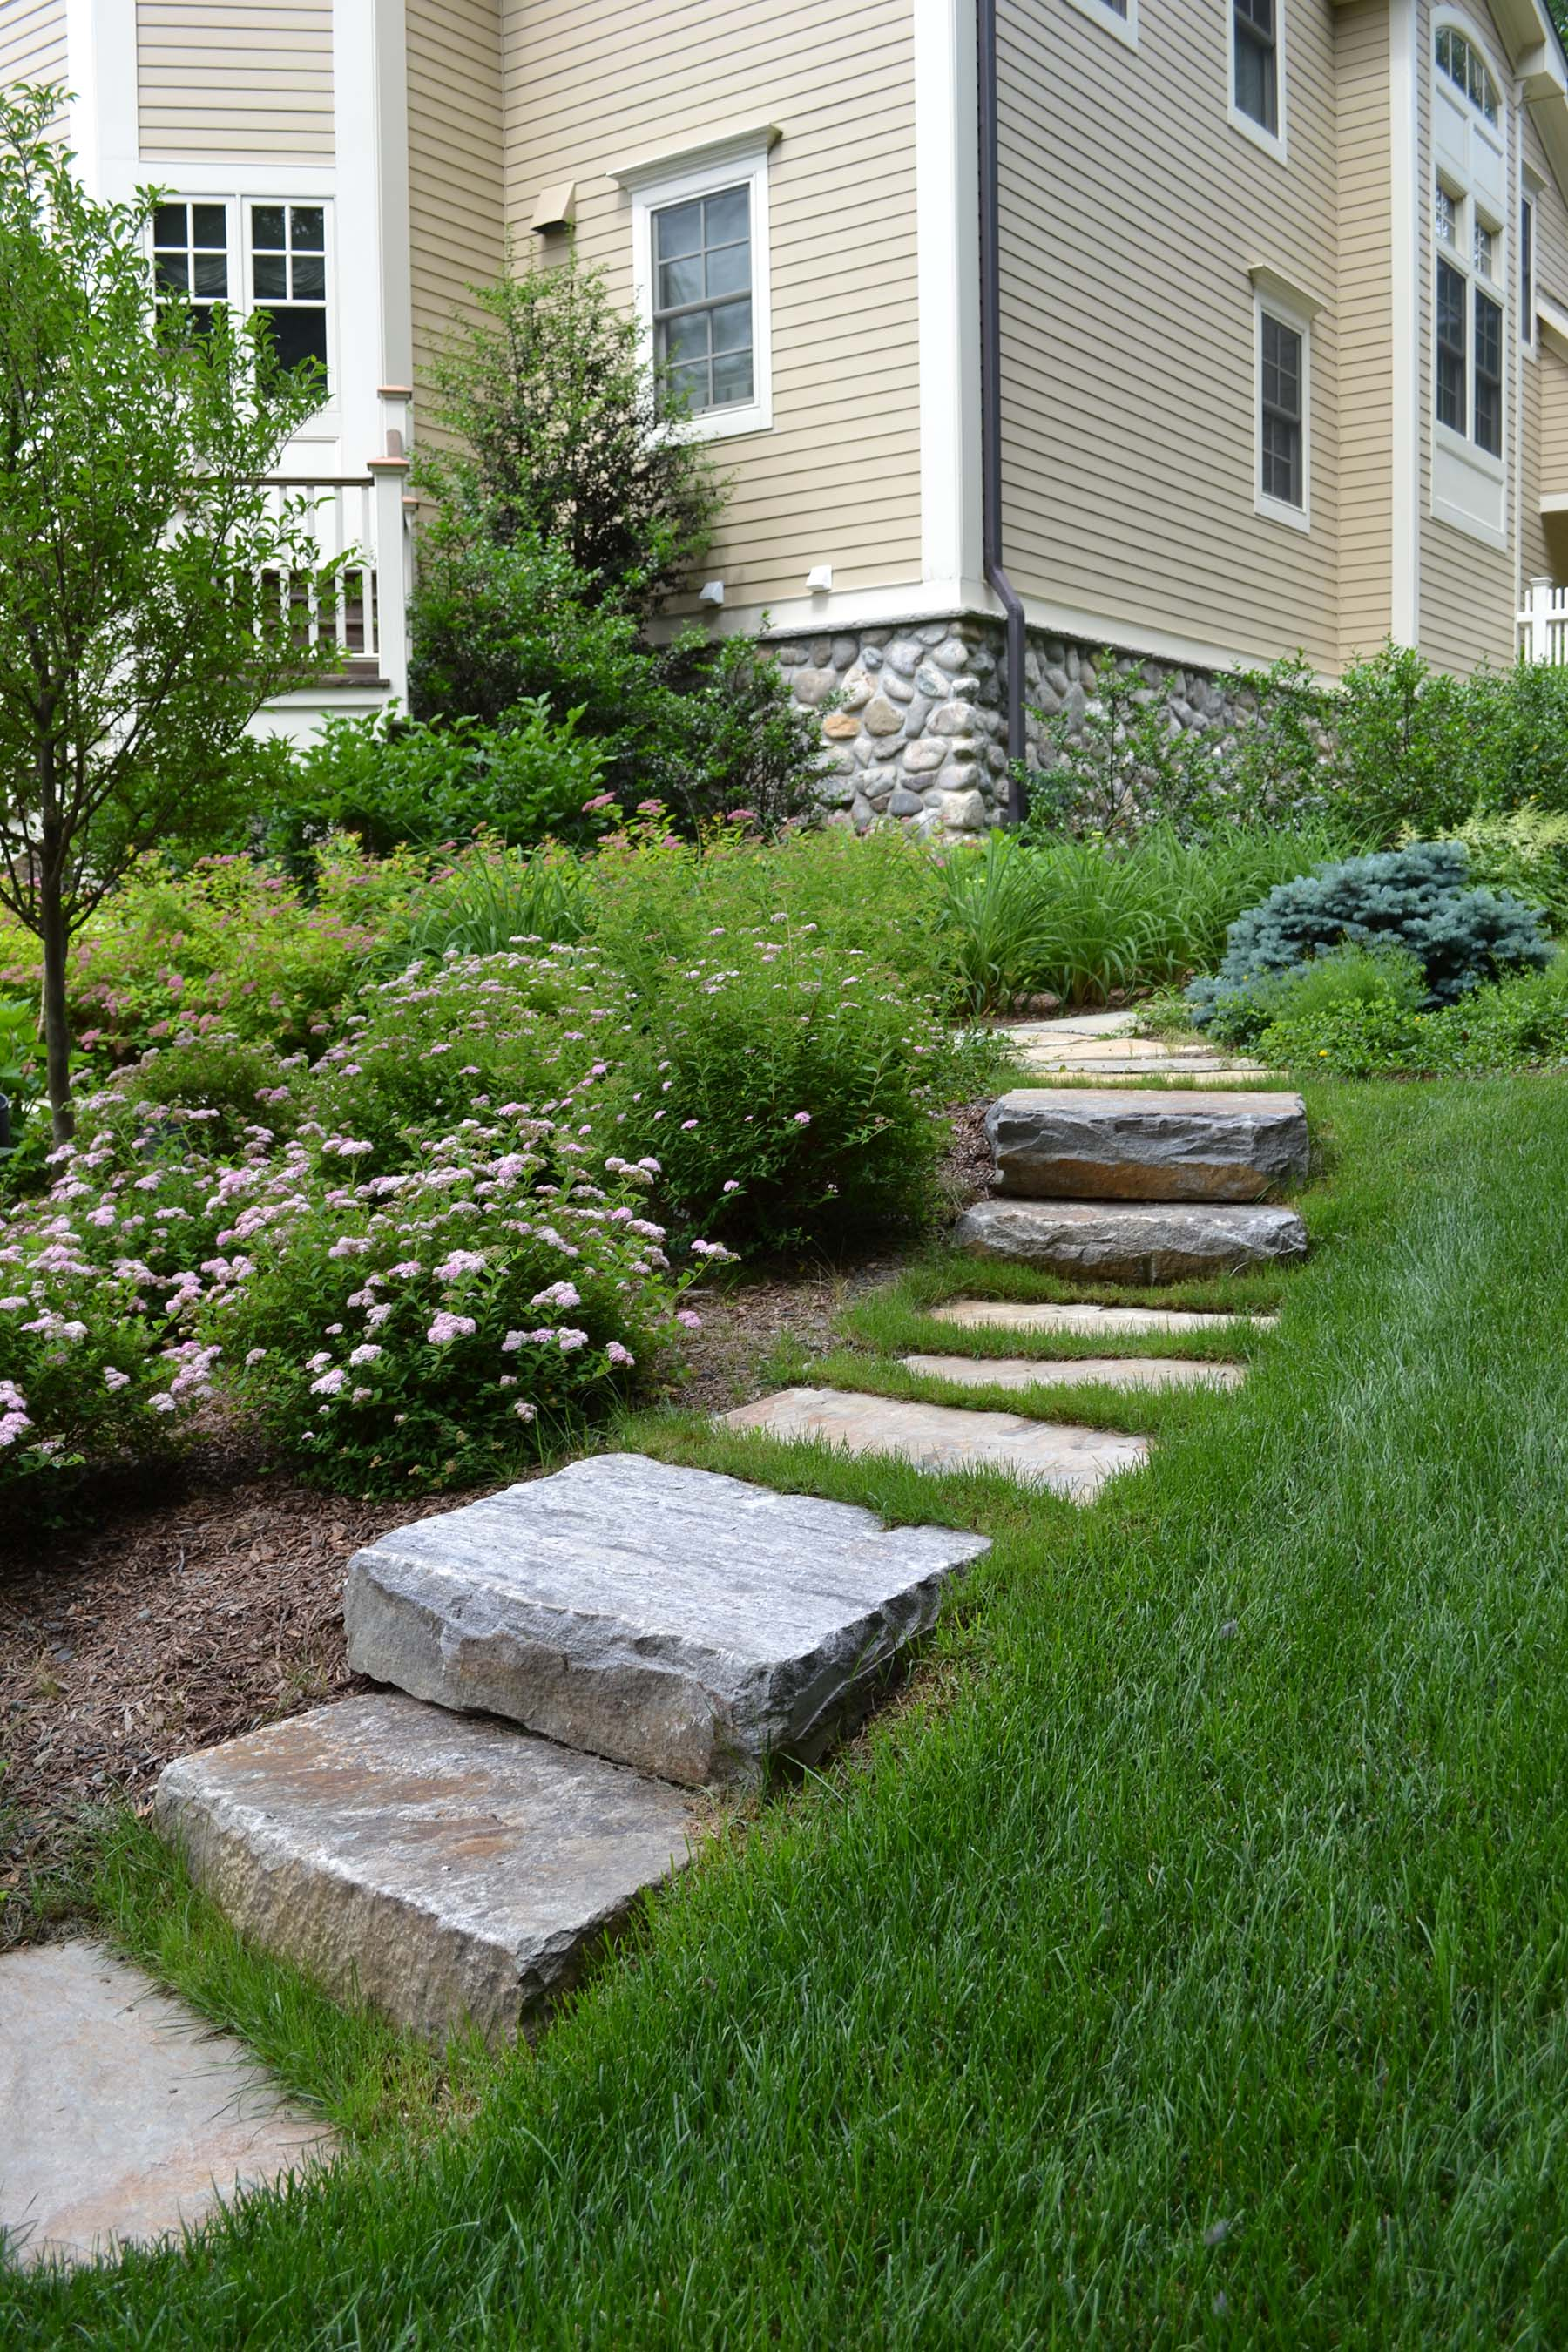 natural stone Ticonderoga granite steps in residential backyard